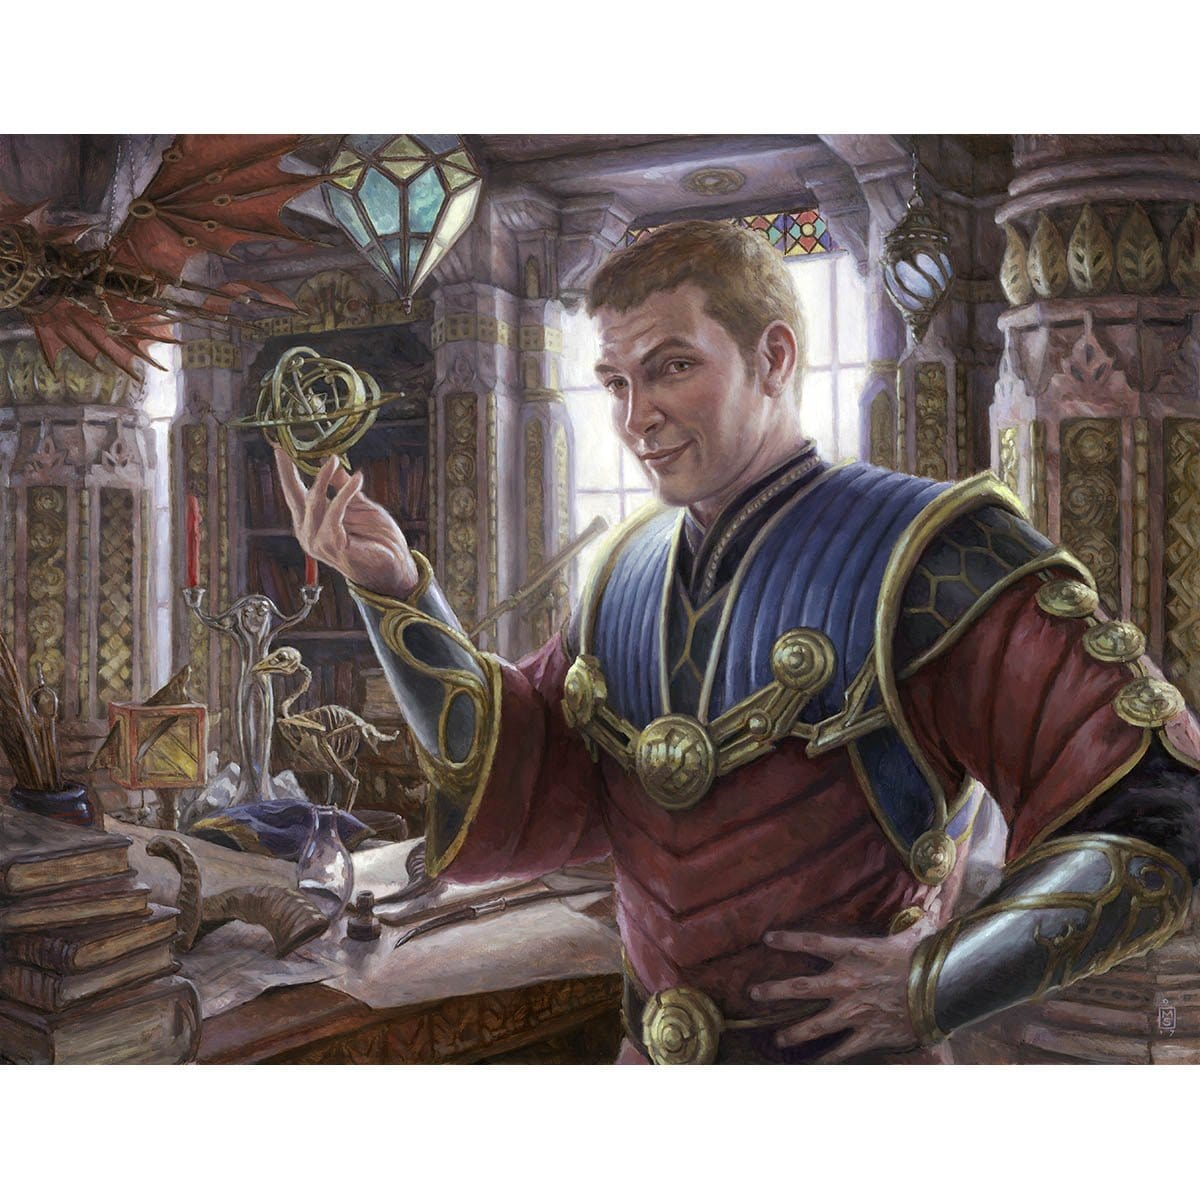 Tawnos, Urza's Apprentice Print - Print - Original Magic Art - Accessories for Magic the Gathering and other card games